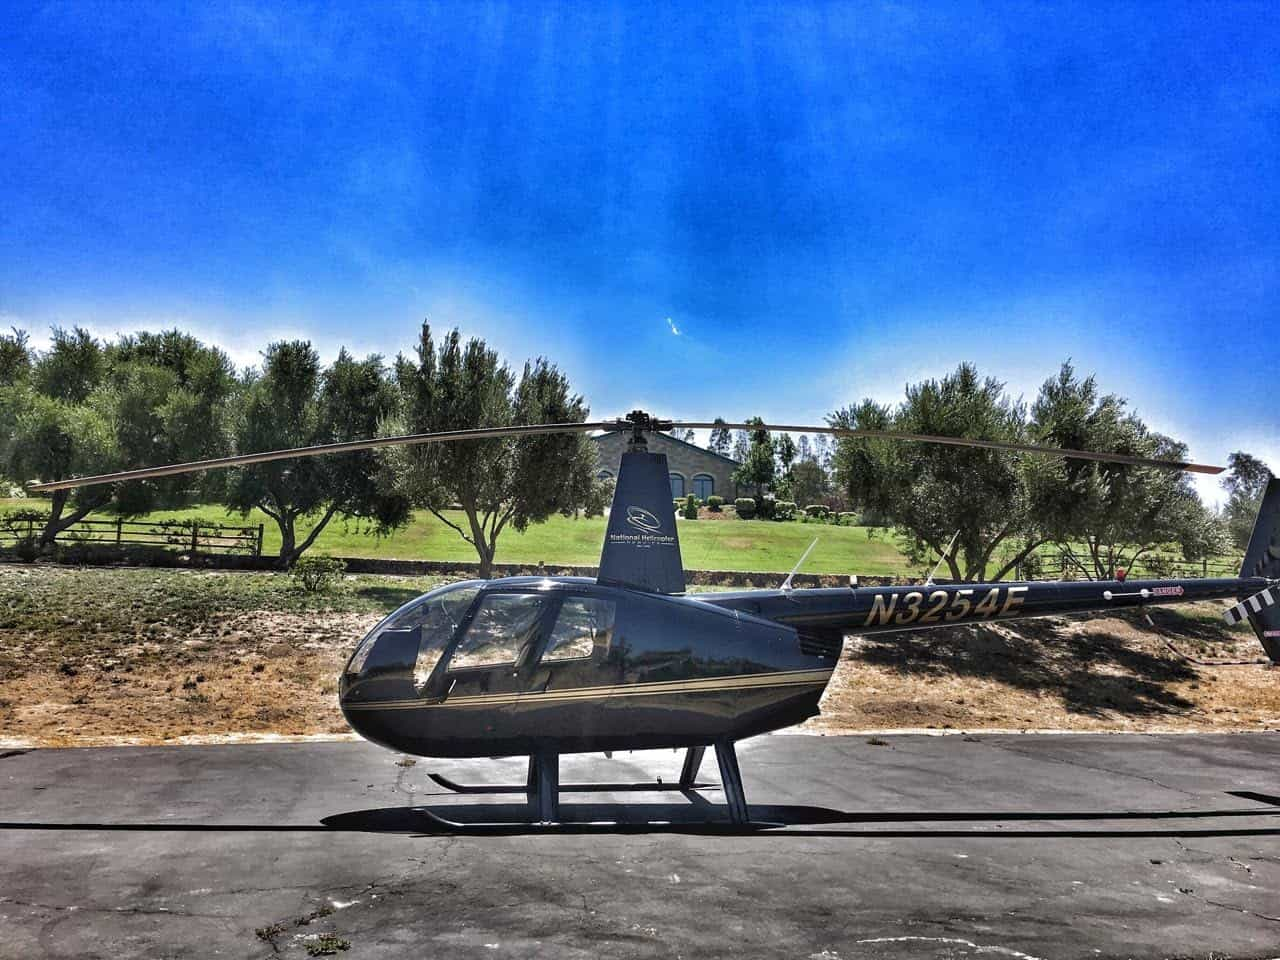 Elite Helicopter Tours image 1